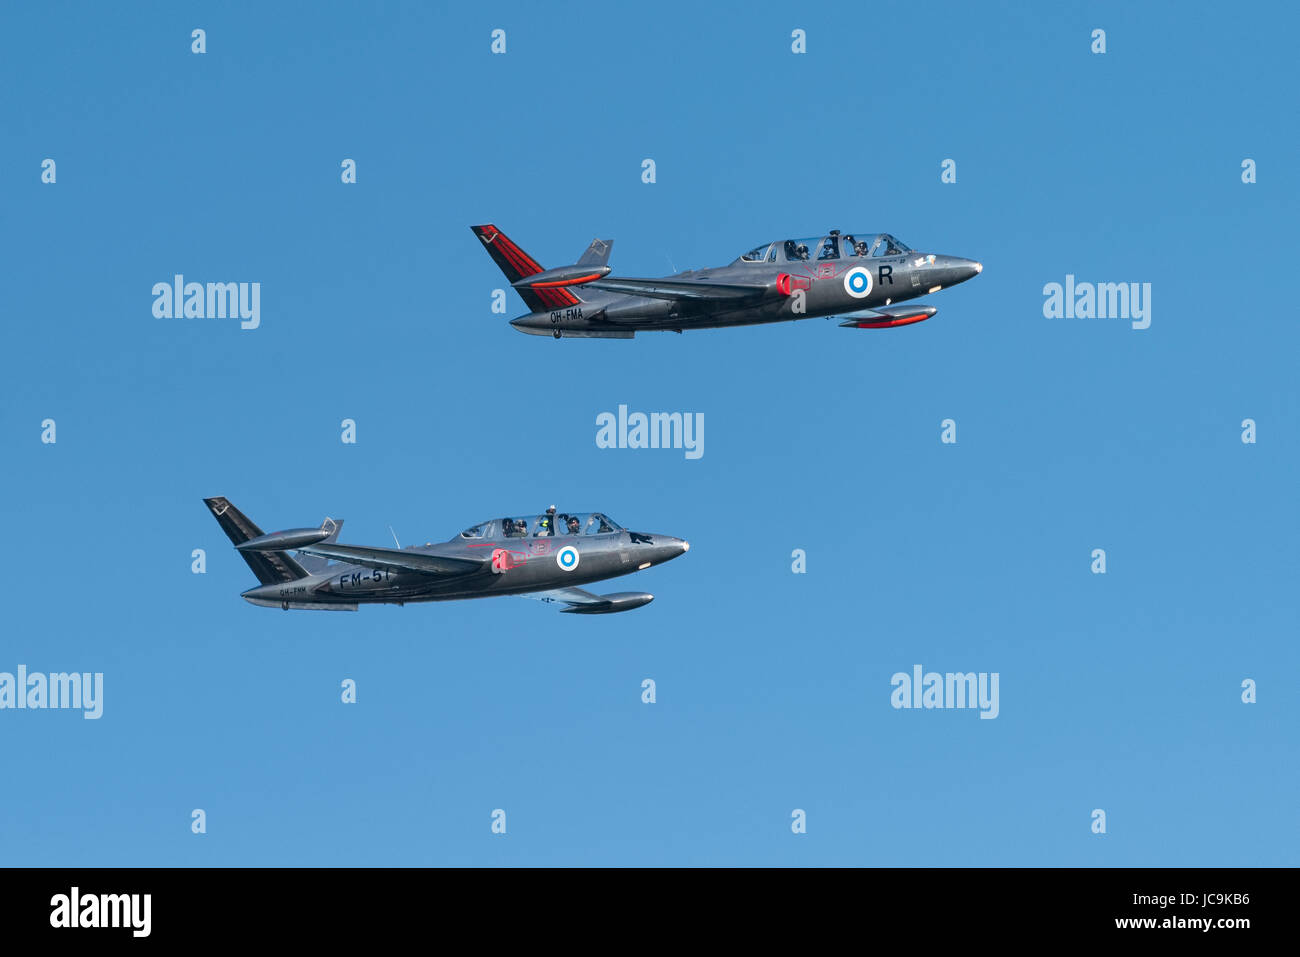 Helsinki, Finland - 9 June 2017: Two Silver Jets Aerobatic Team Fouga CM 170 Magister jets flying at the Kaivopuisto - Stock Image